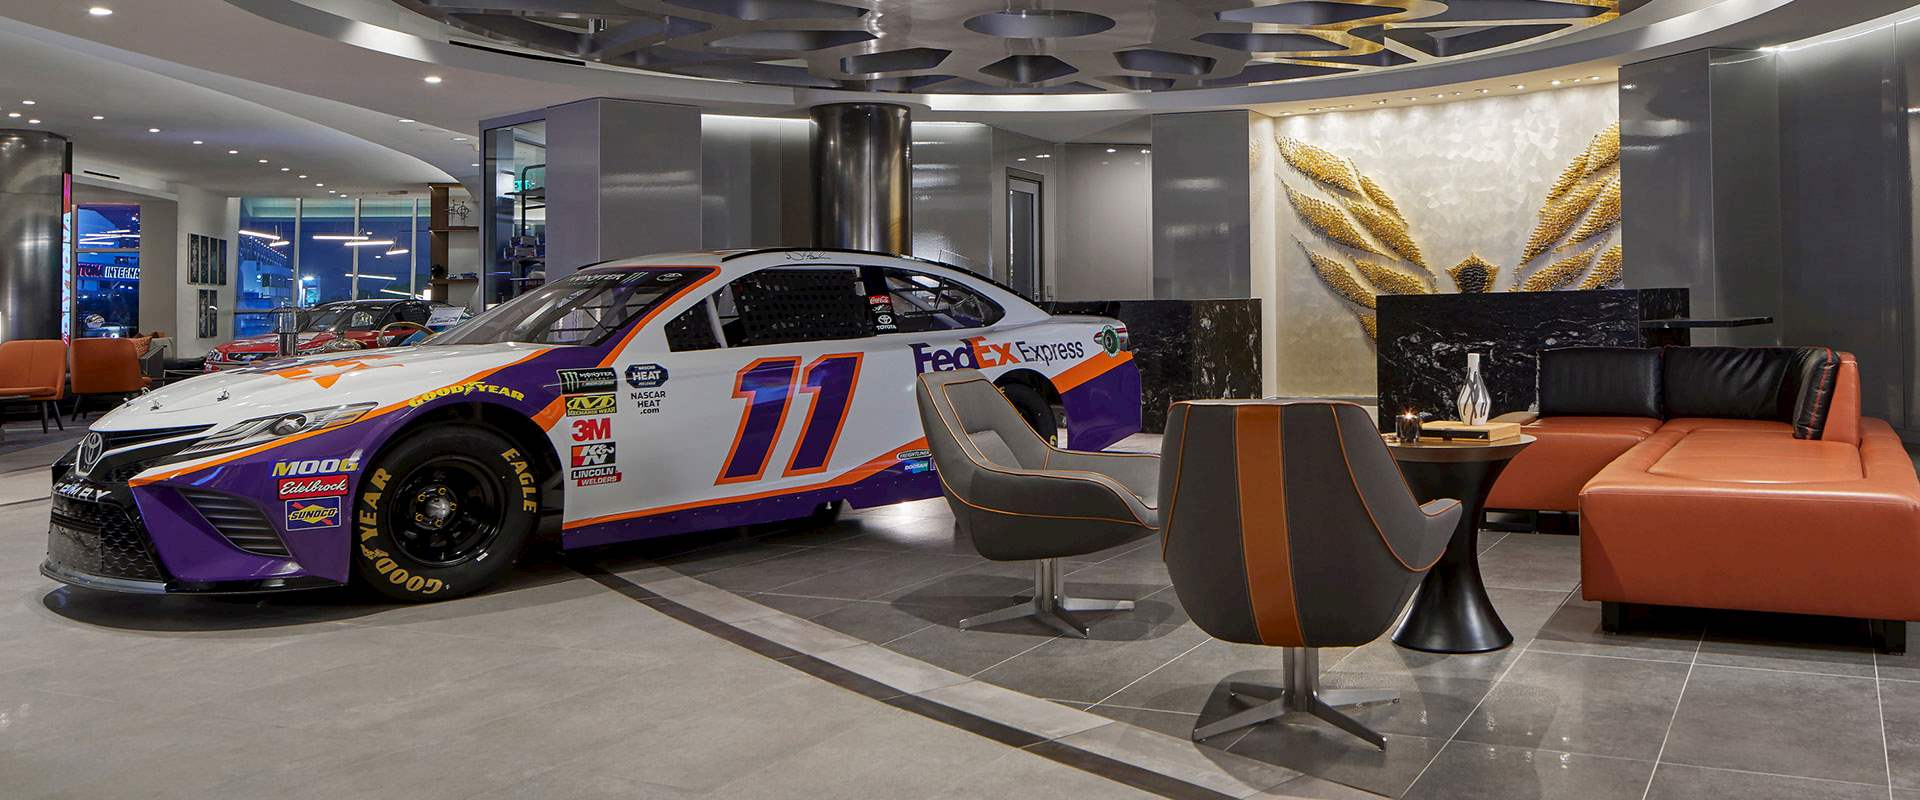 The Daytona Autograph Collection Hotel Experiences